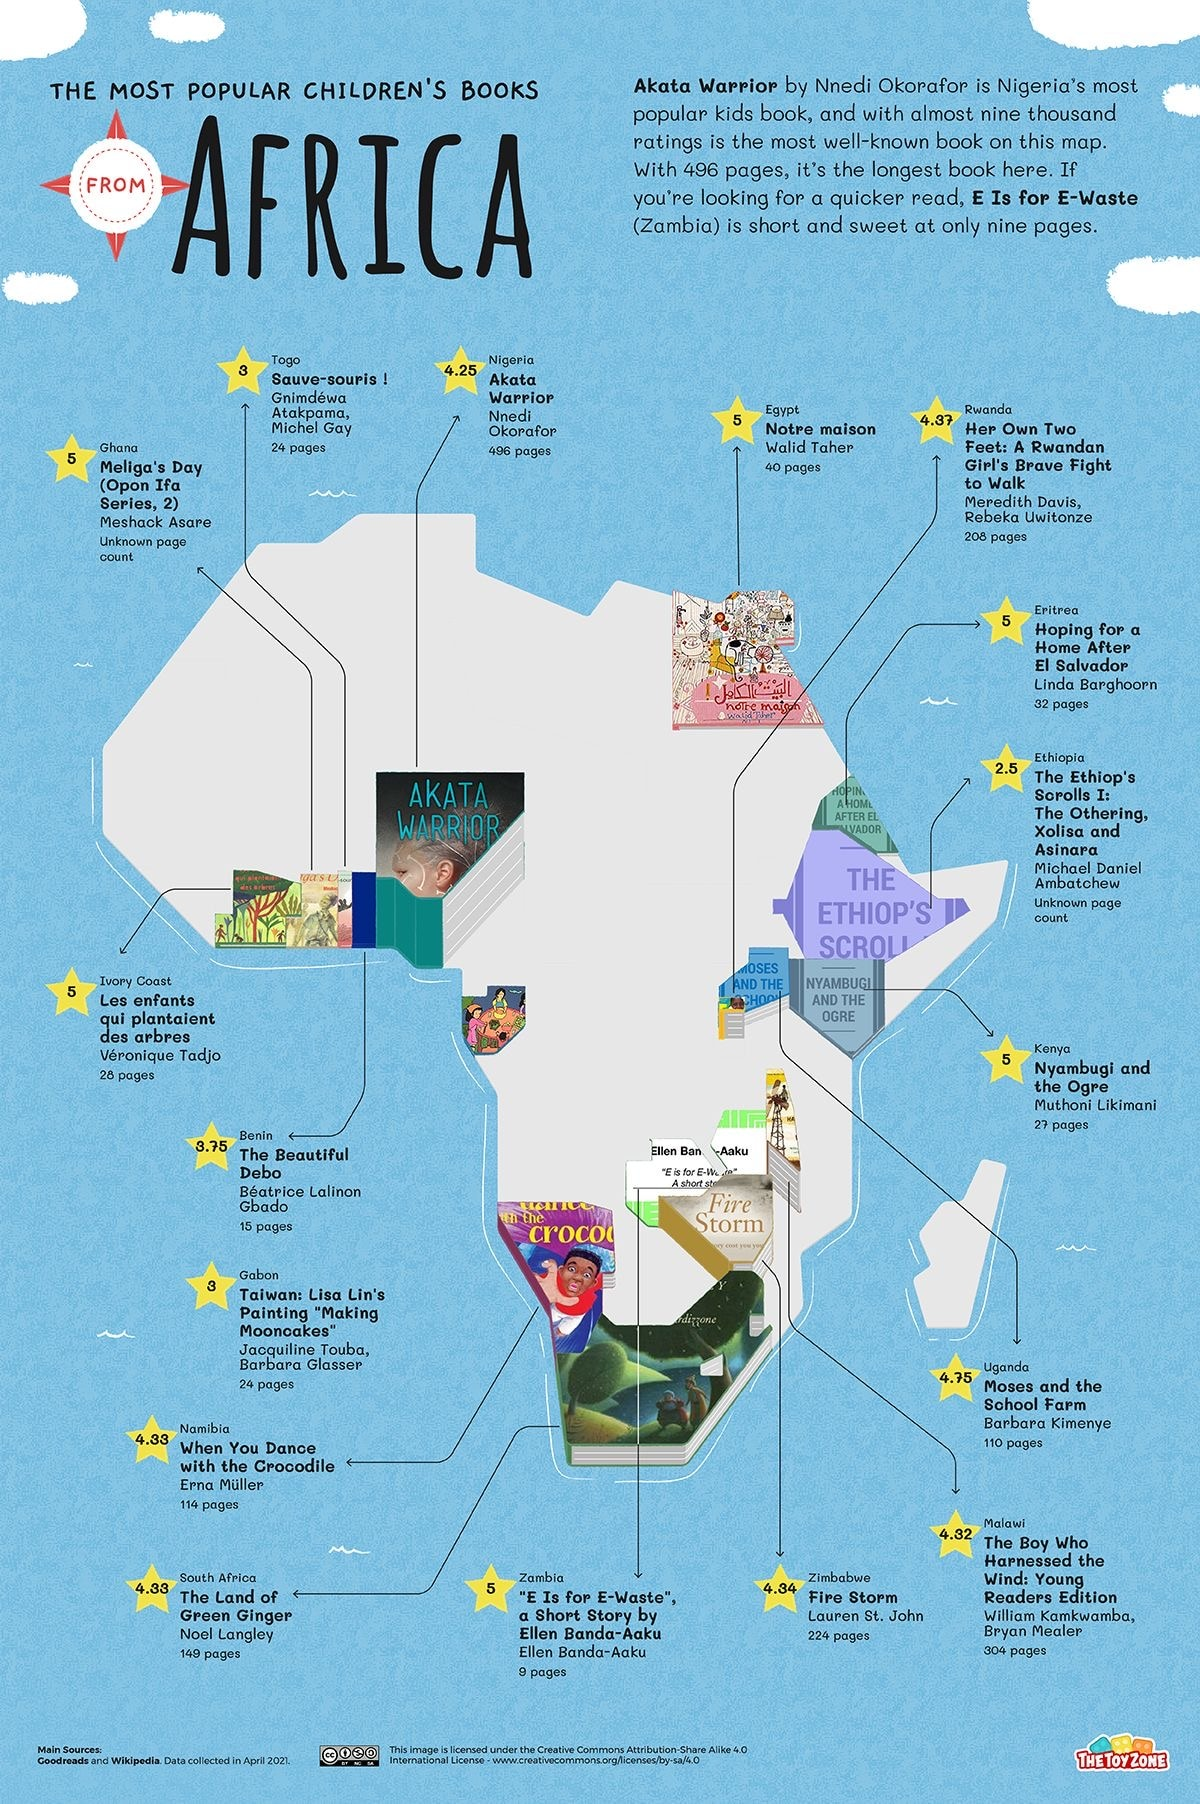 Most popular children's books from Africa